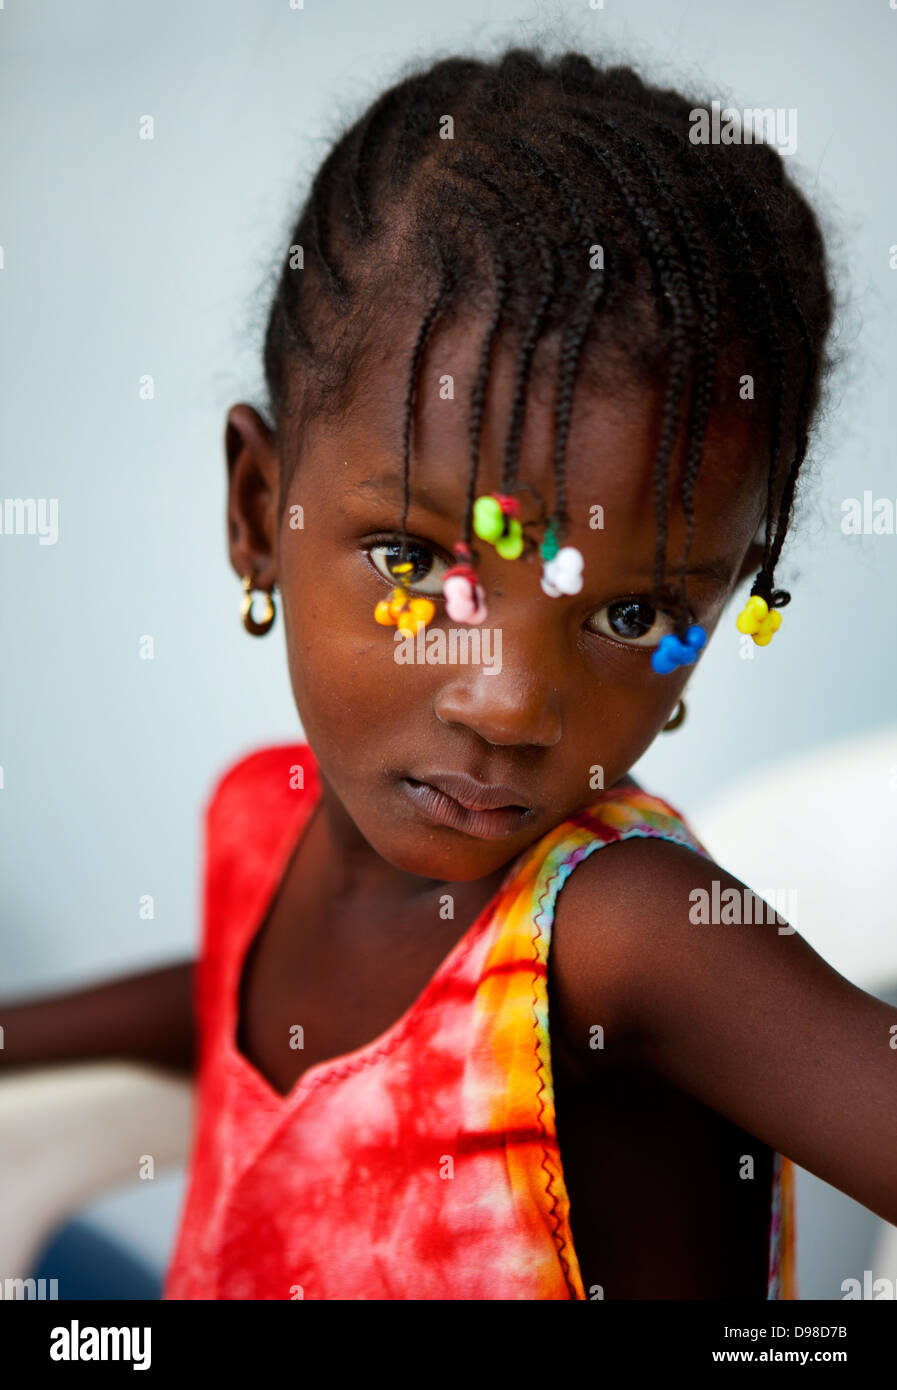 Portrait of a young girl, Dakar, Senegal - Stock Image